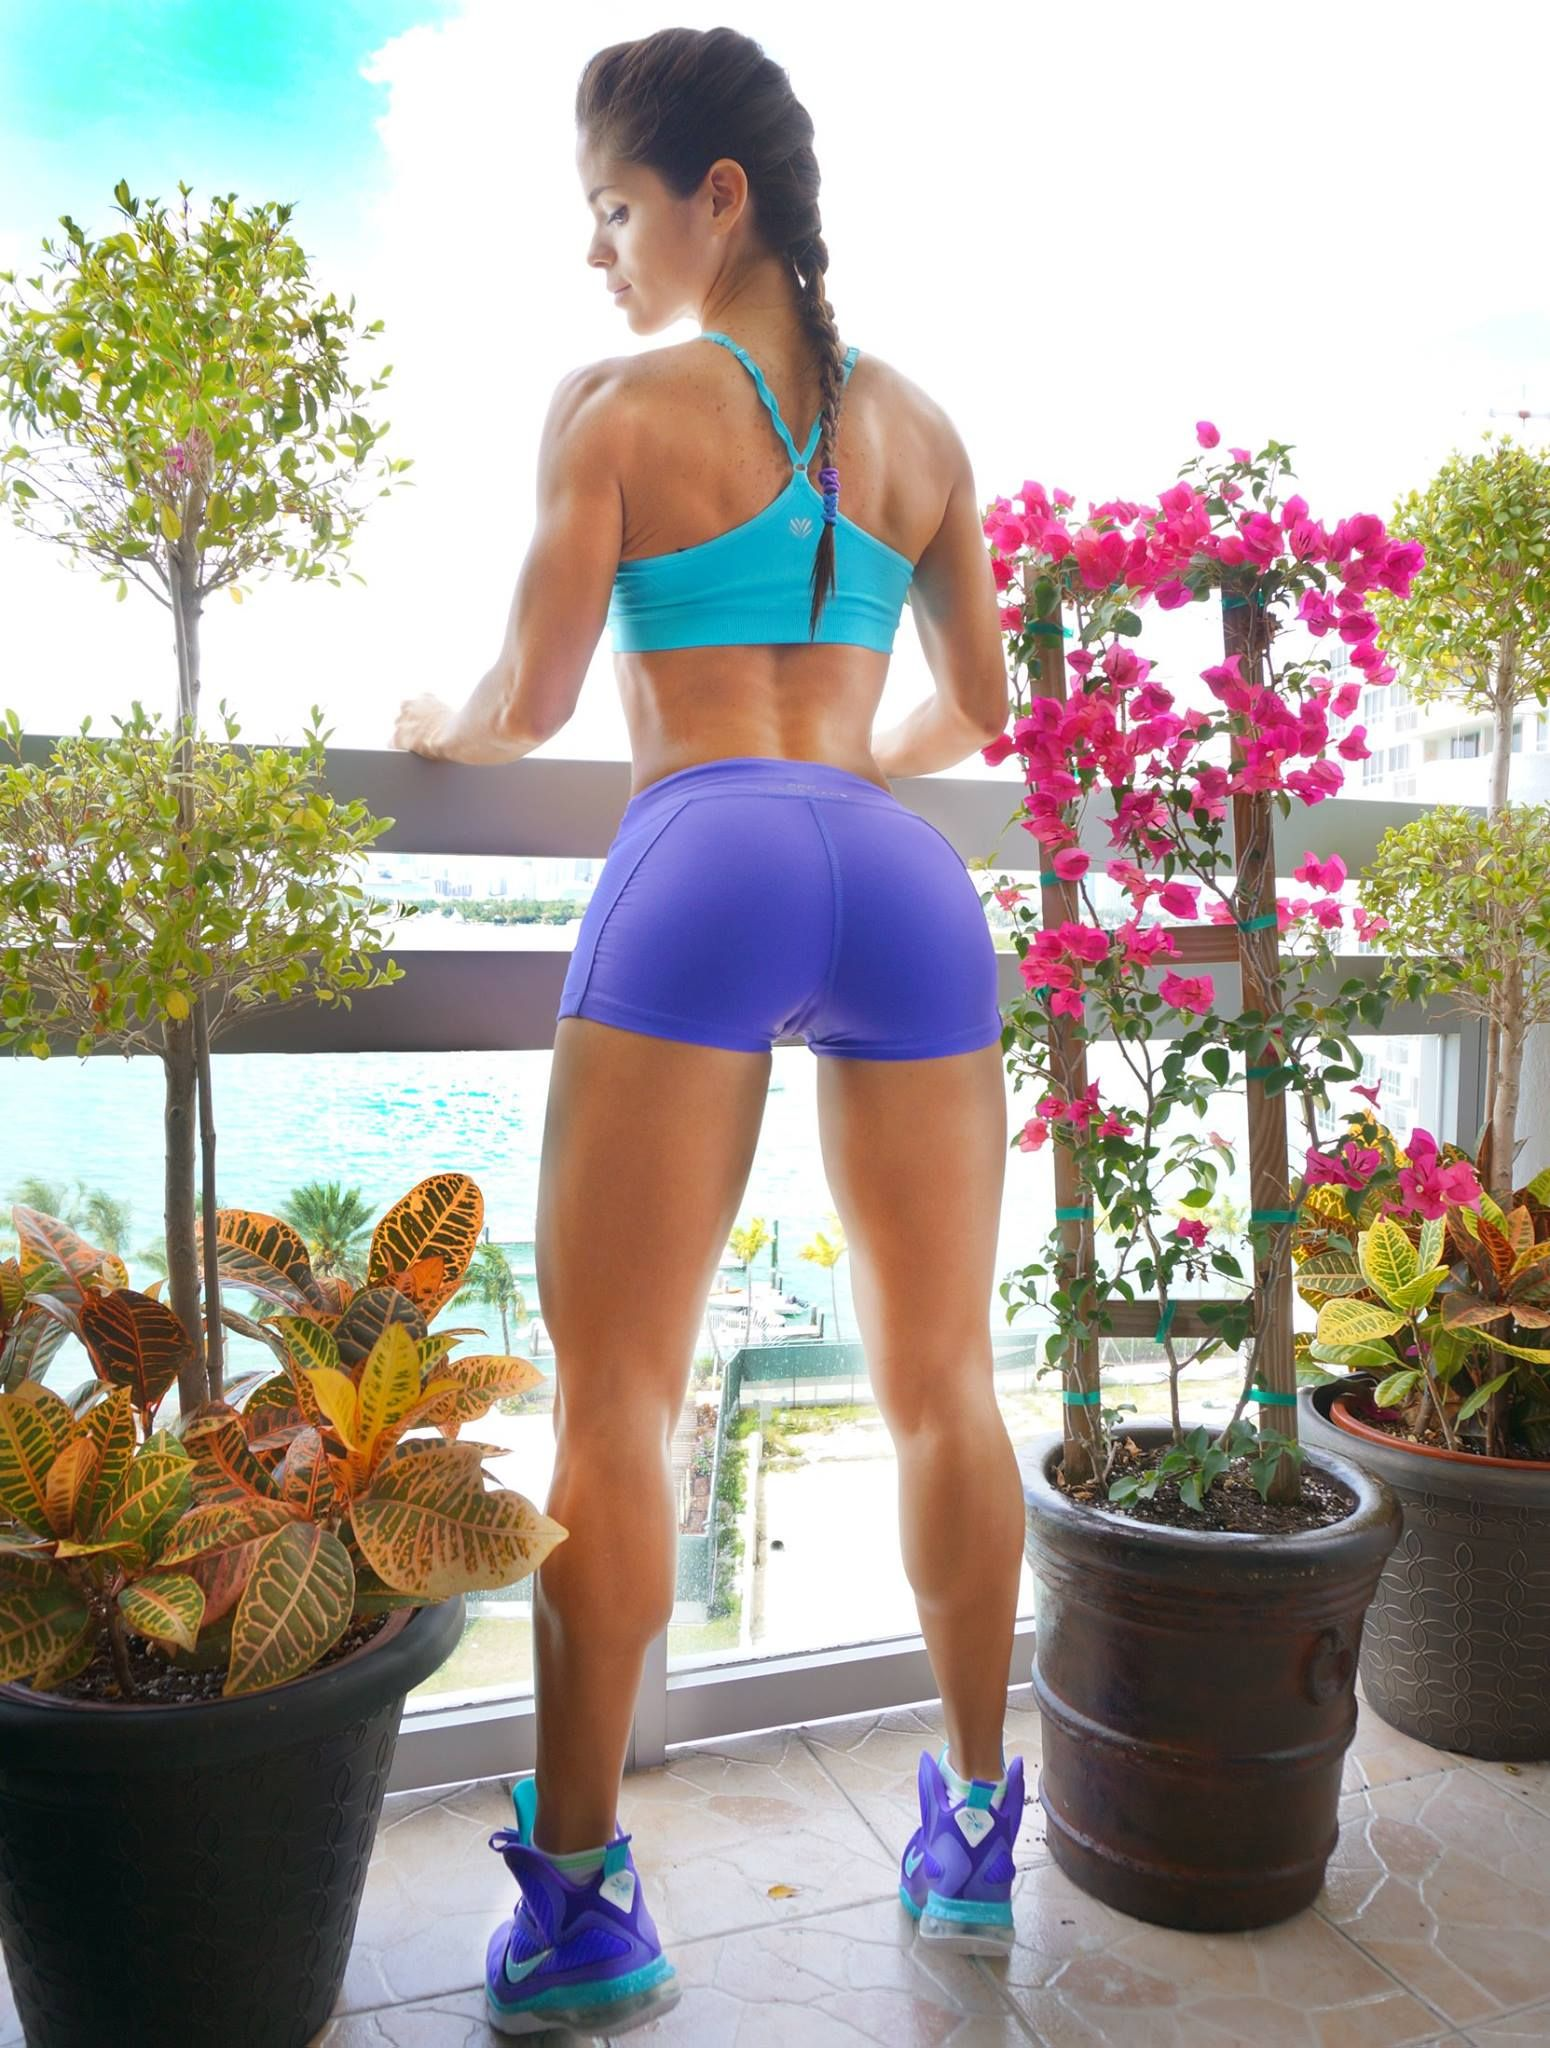 michelle lewin | big ass white girls | pinterest | michelle lewin